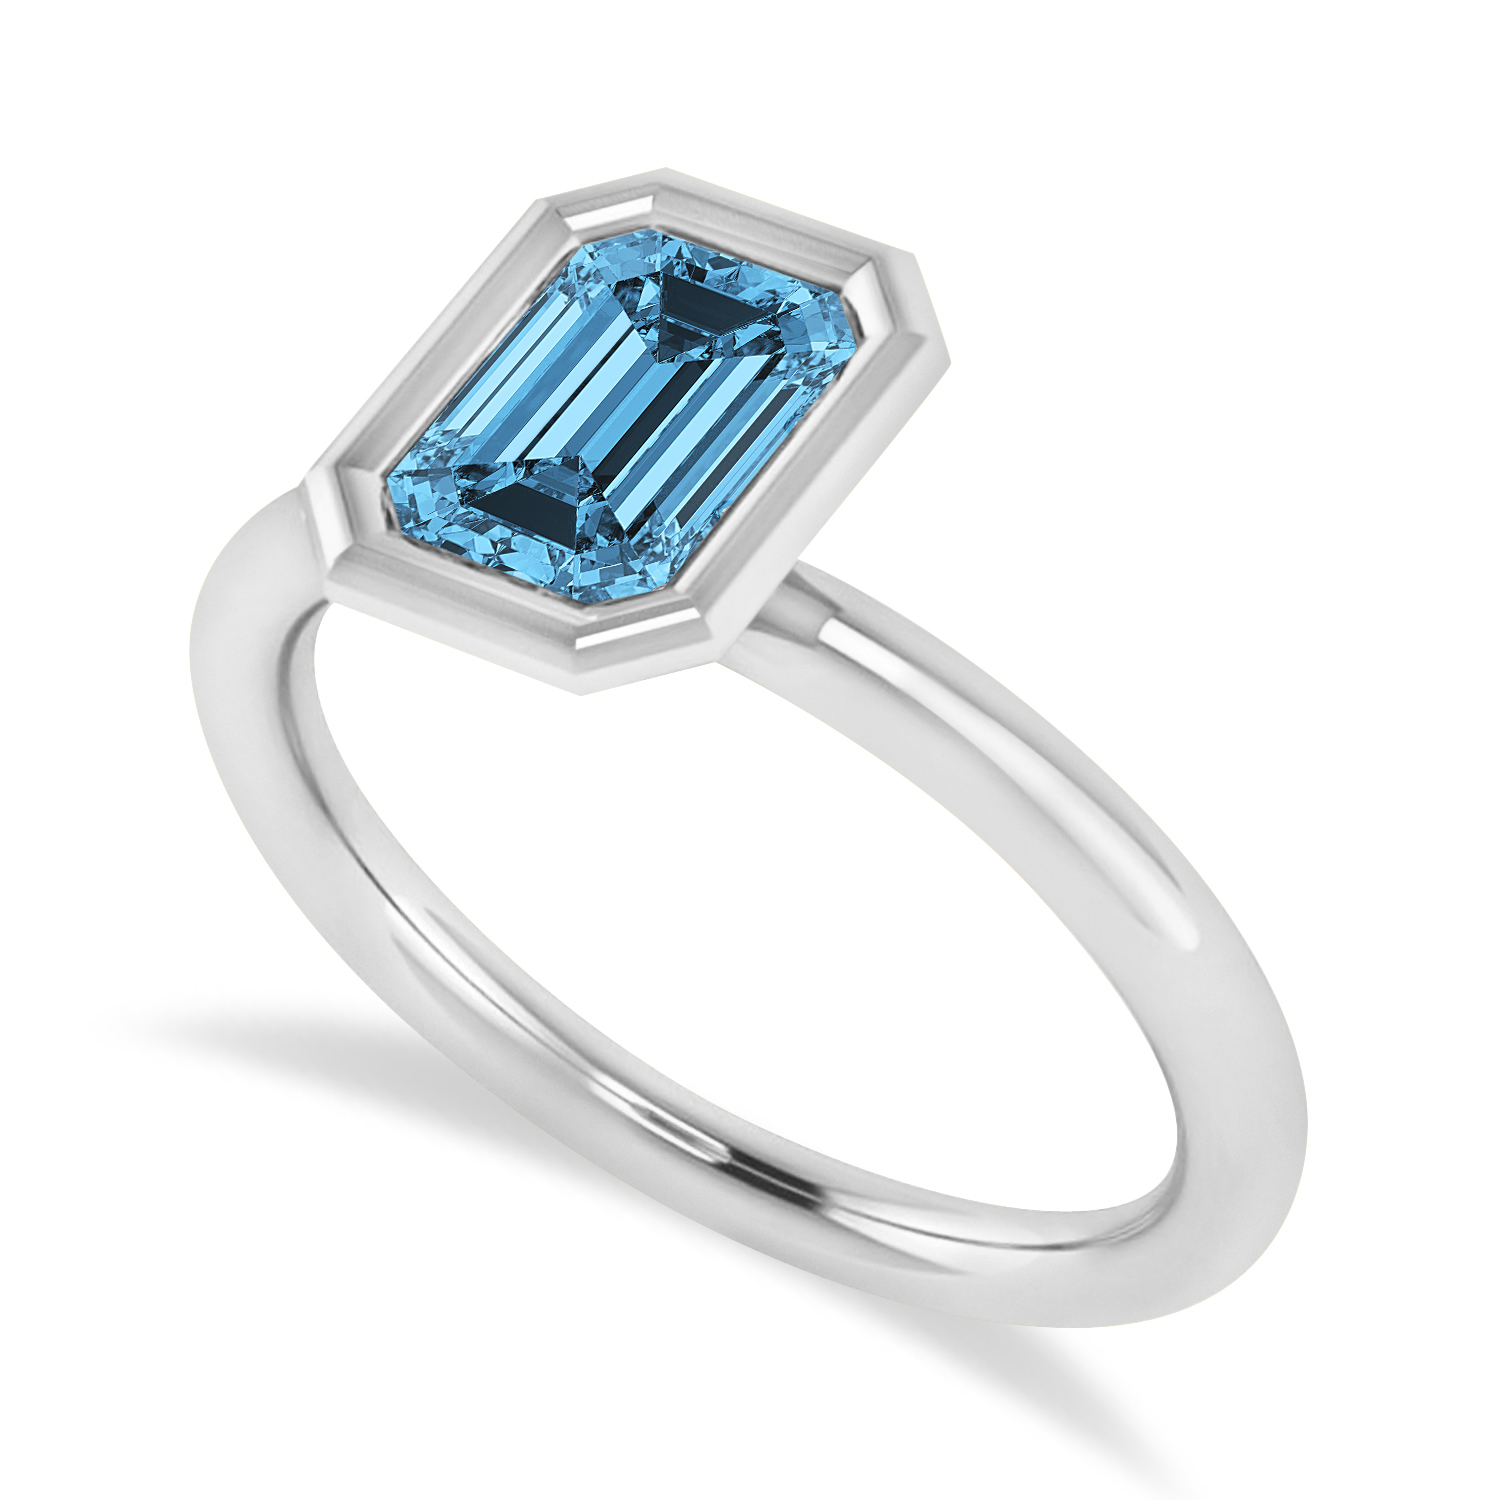 Emerald-Cut Bezel-Set Blue Topaz Solitaire Ring 14k White Gold (1.00 ctw)